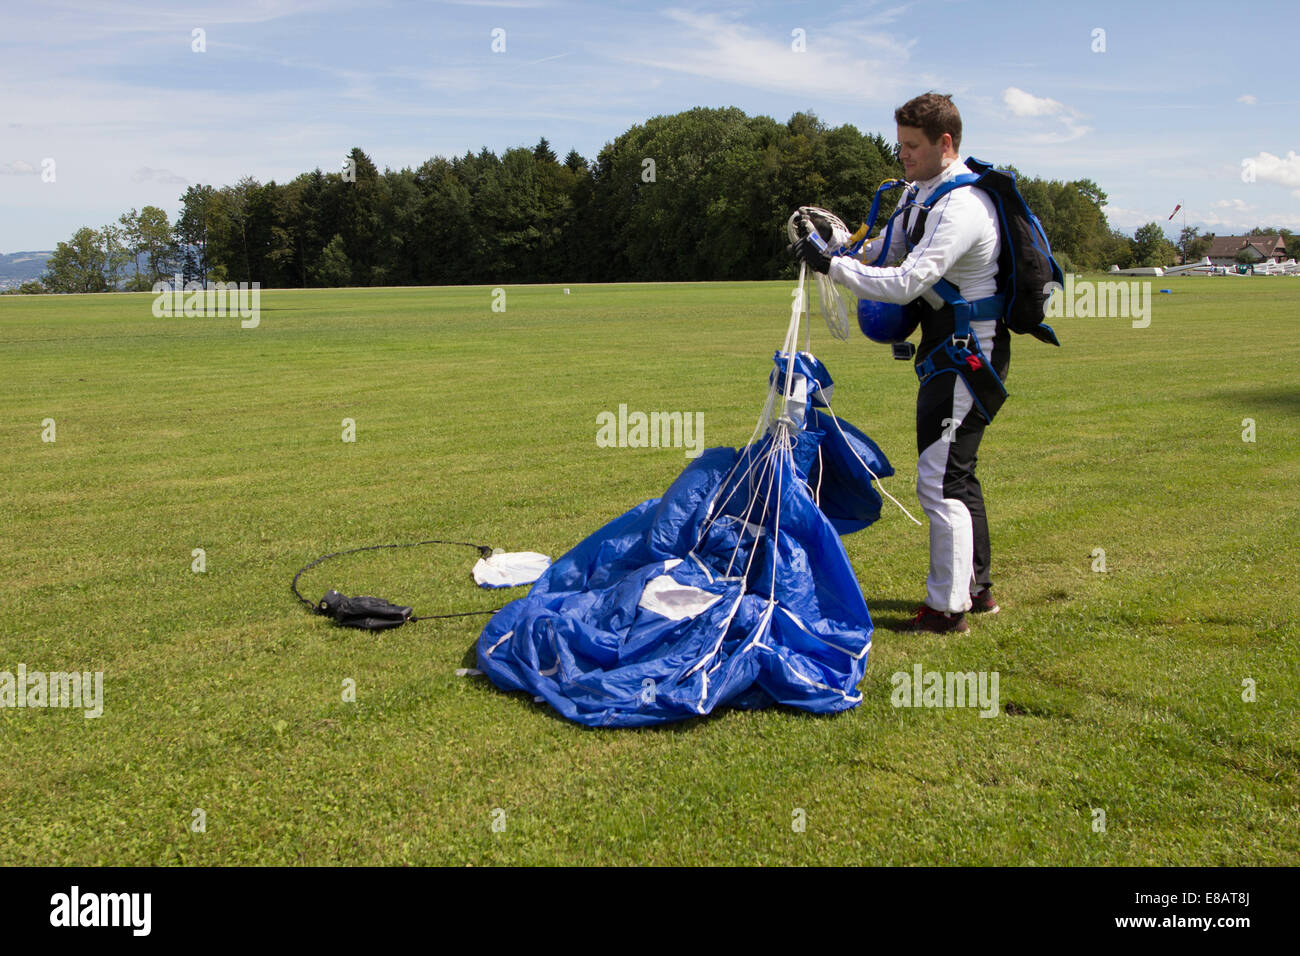 Male skydiver folding his parachute after skydive landing, Buttwil, Luzern, Switzerland - Stock Image